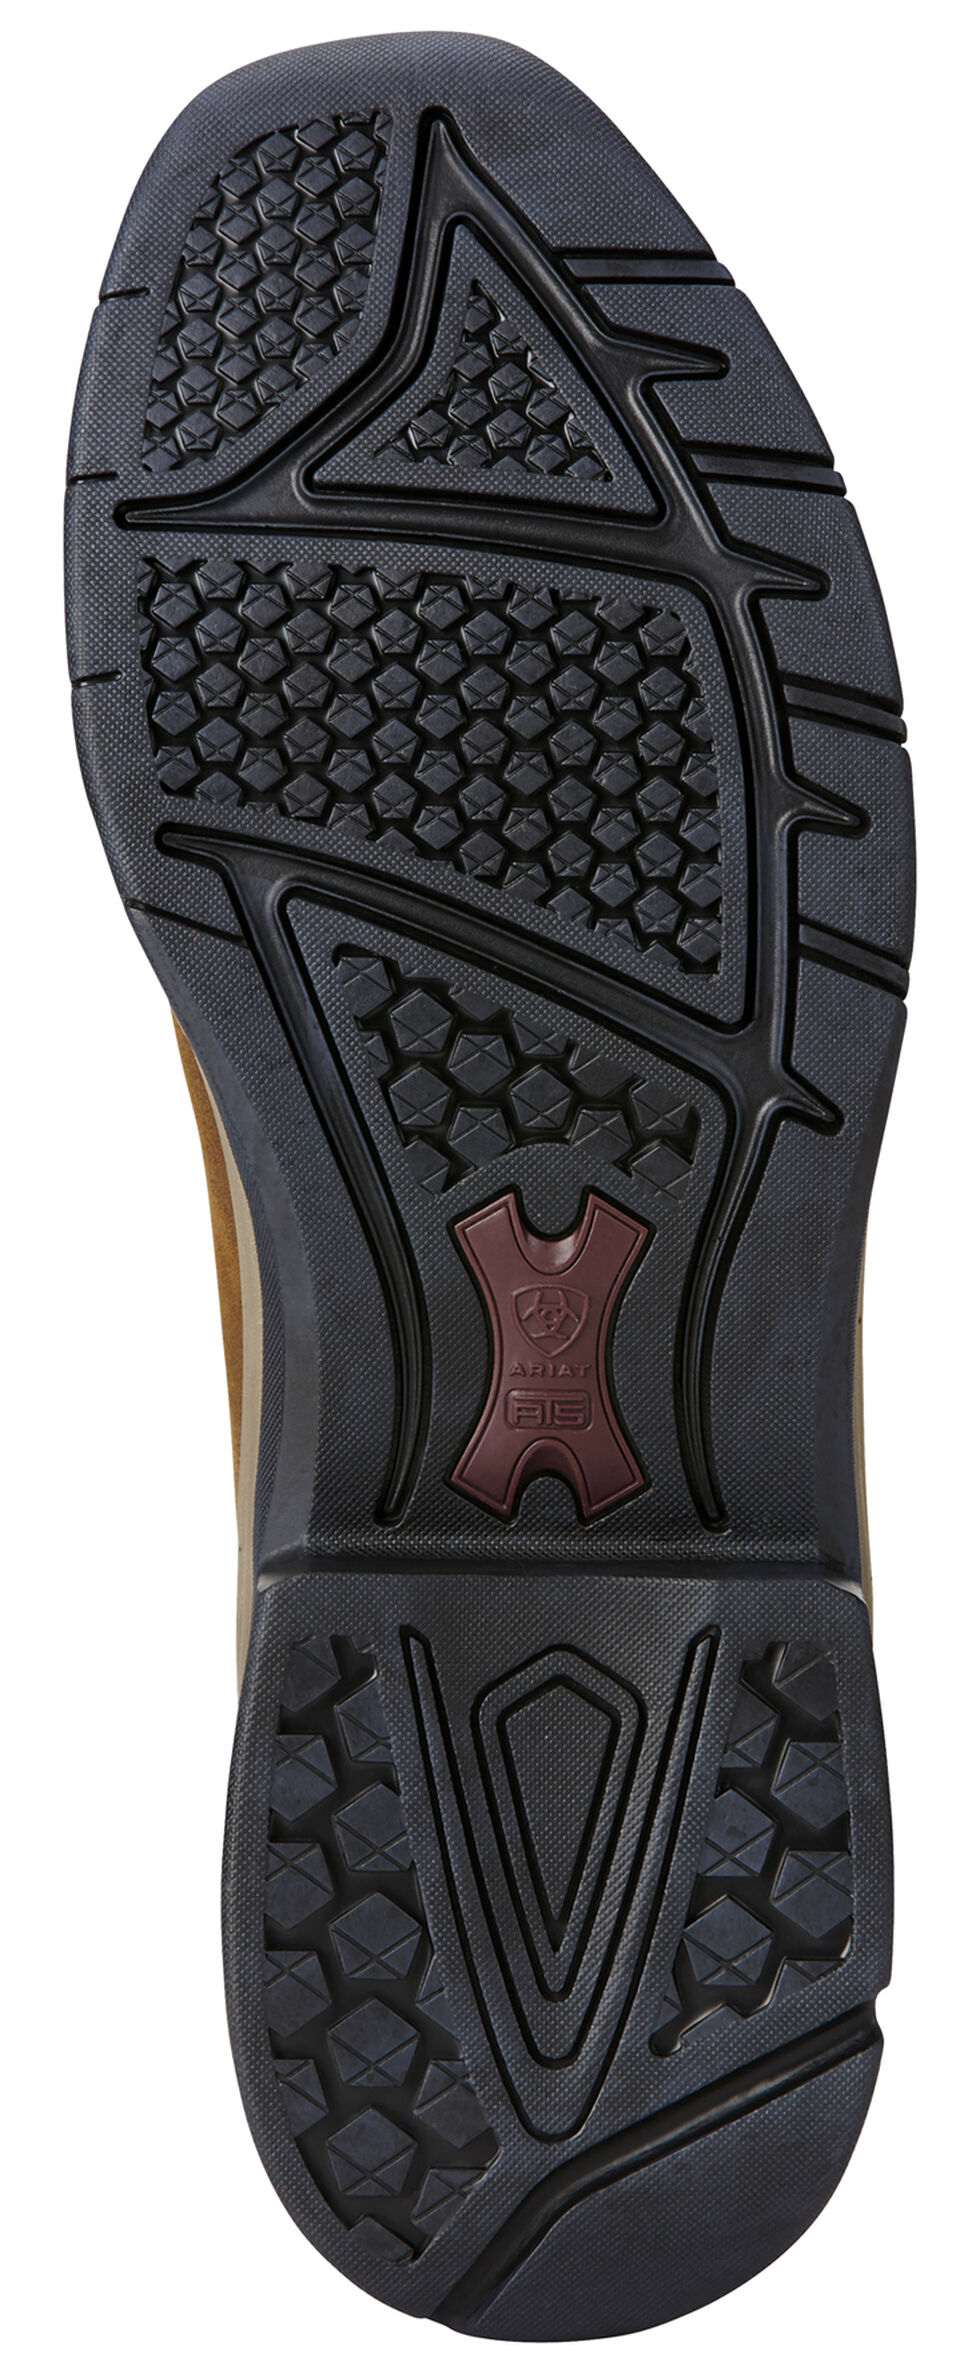 Ariat Men's Bison Terrain Pro Performance Boots , Bison, hi-res